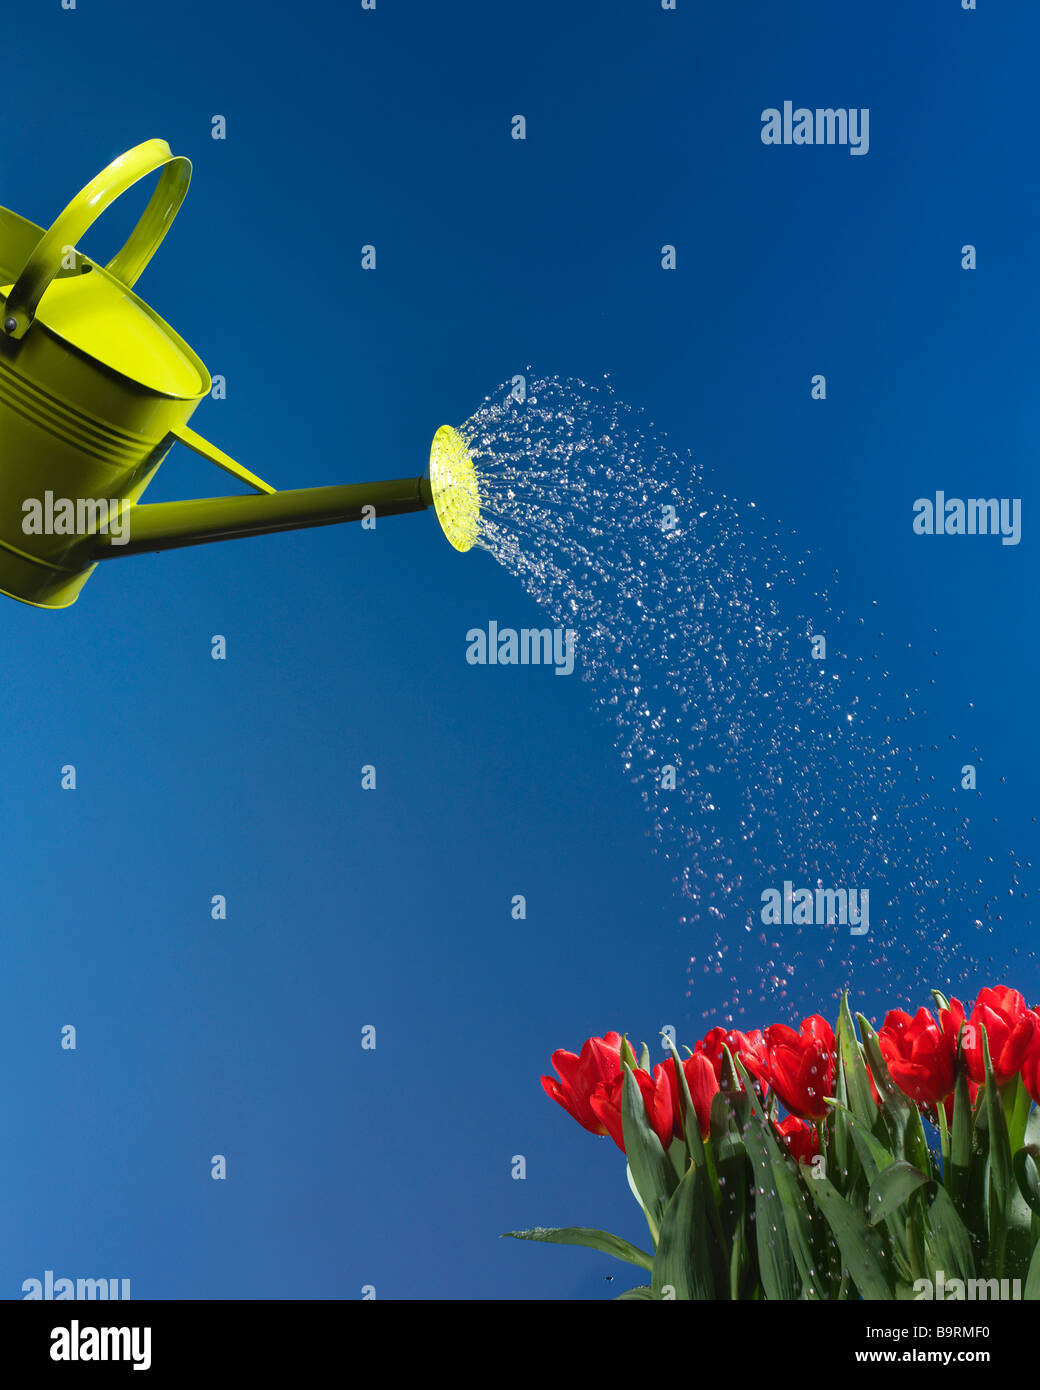 green watering can sprinkling water onto red tulips with blue sky - Stock Image